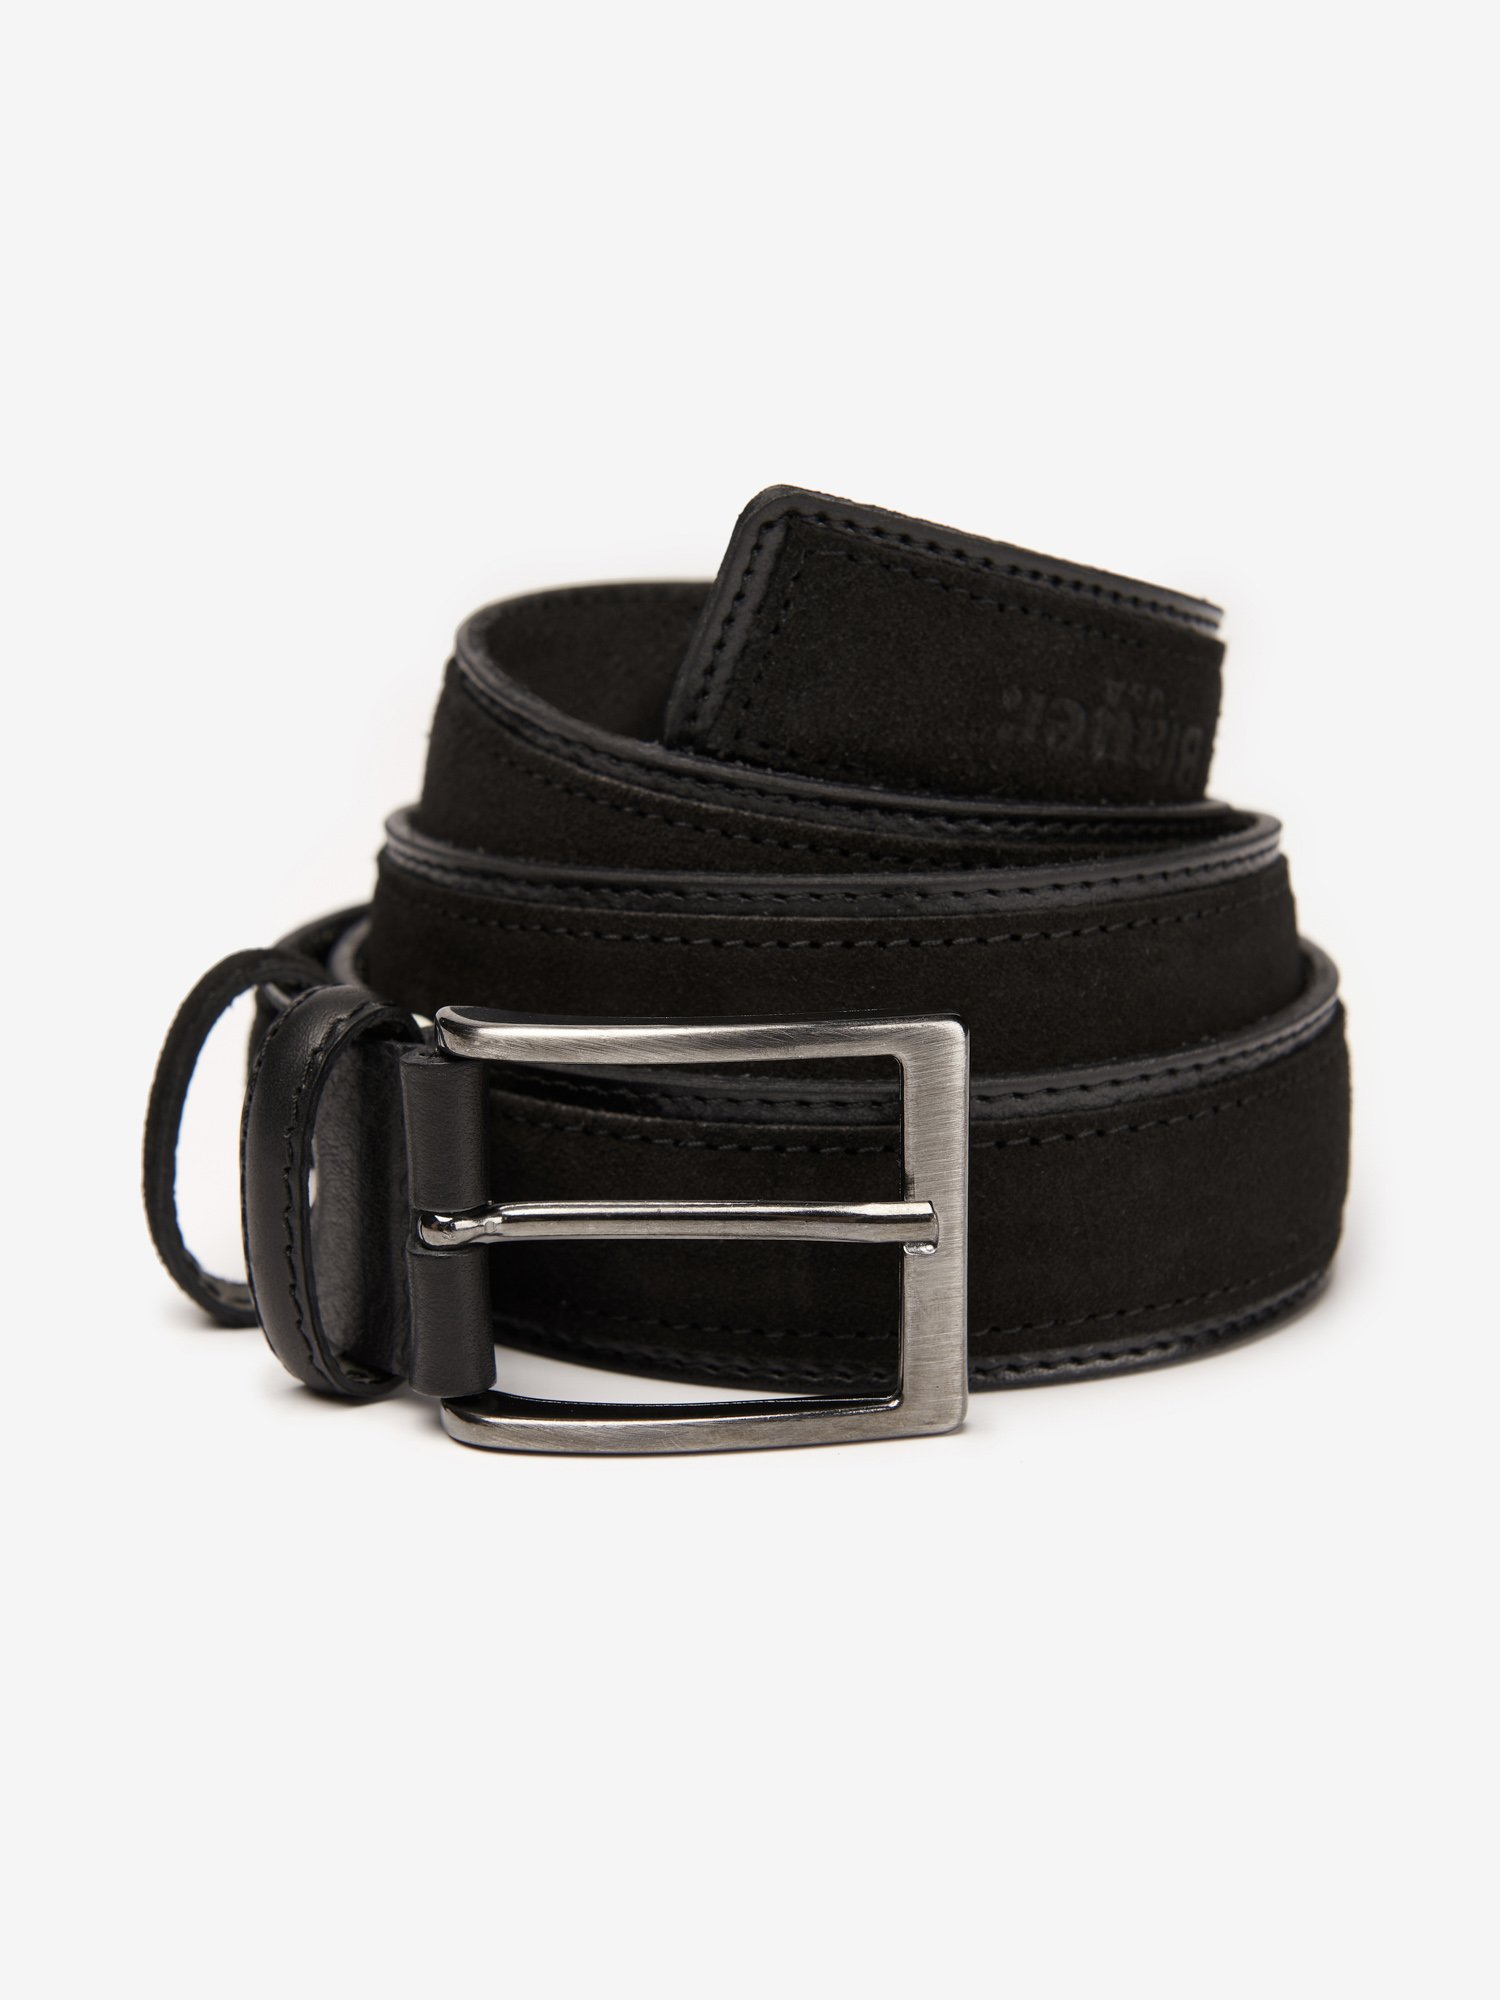 ADJUSTABLE LEATHER BELT - Blauer